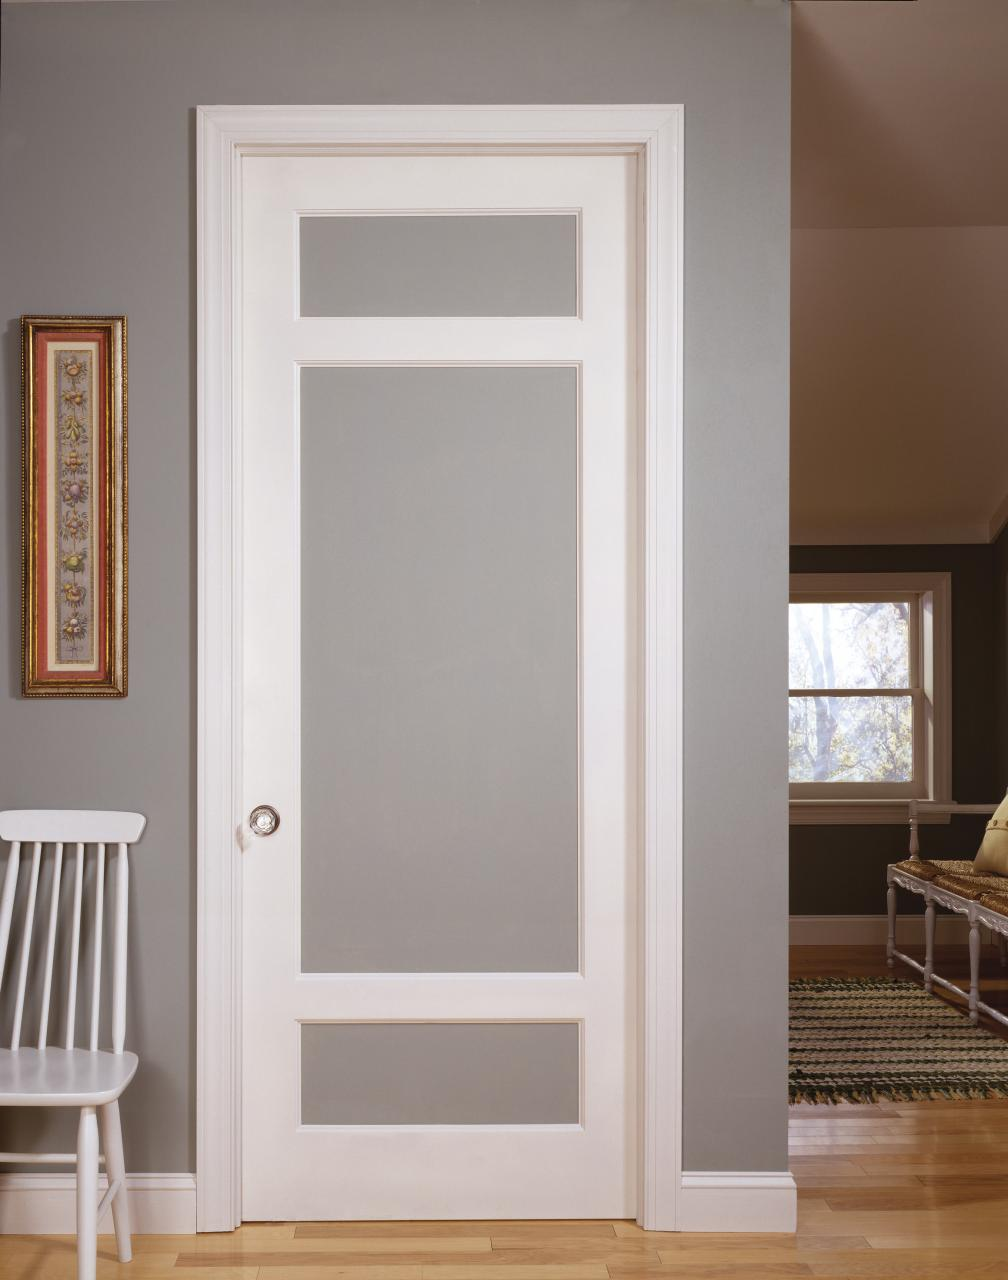 Ordinaire Farm House MDF Interior Door   Standard Panel